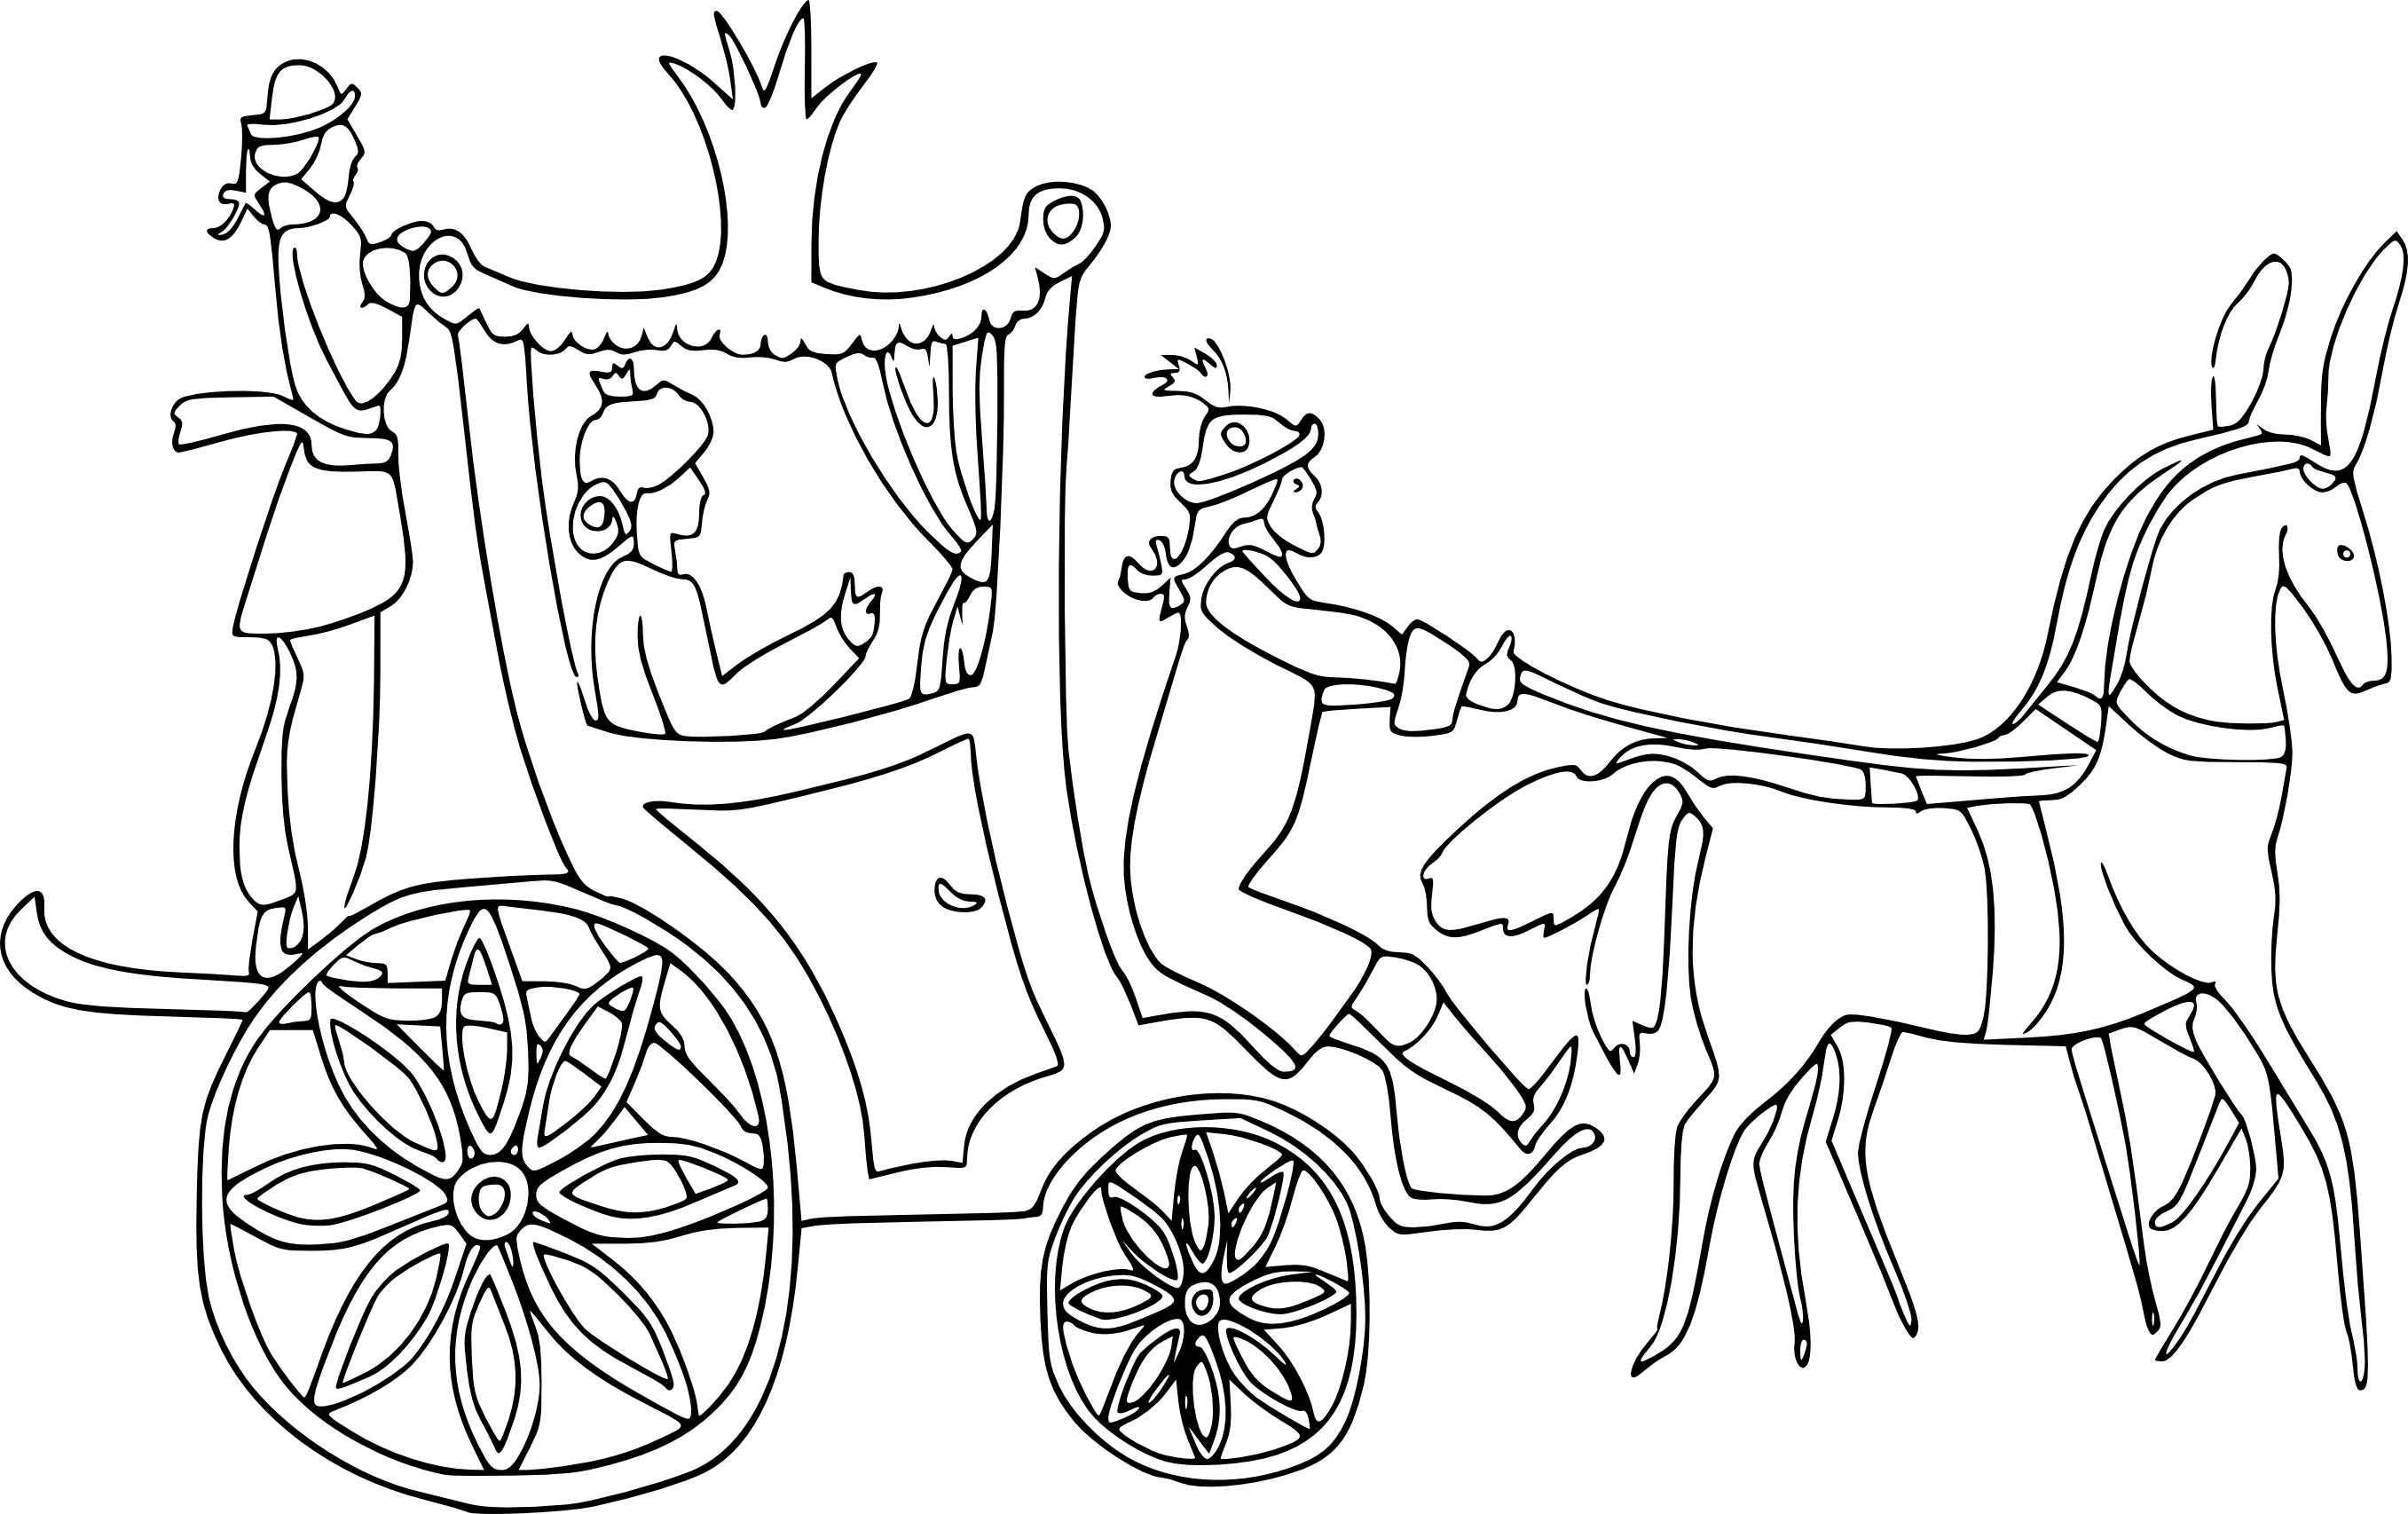 carriage coloring pages horse and buggy drawing at getdrawings free download carriage pages coloring